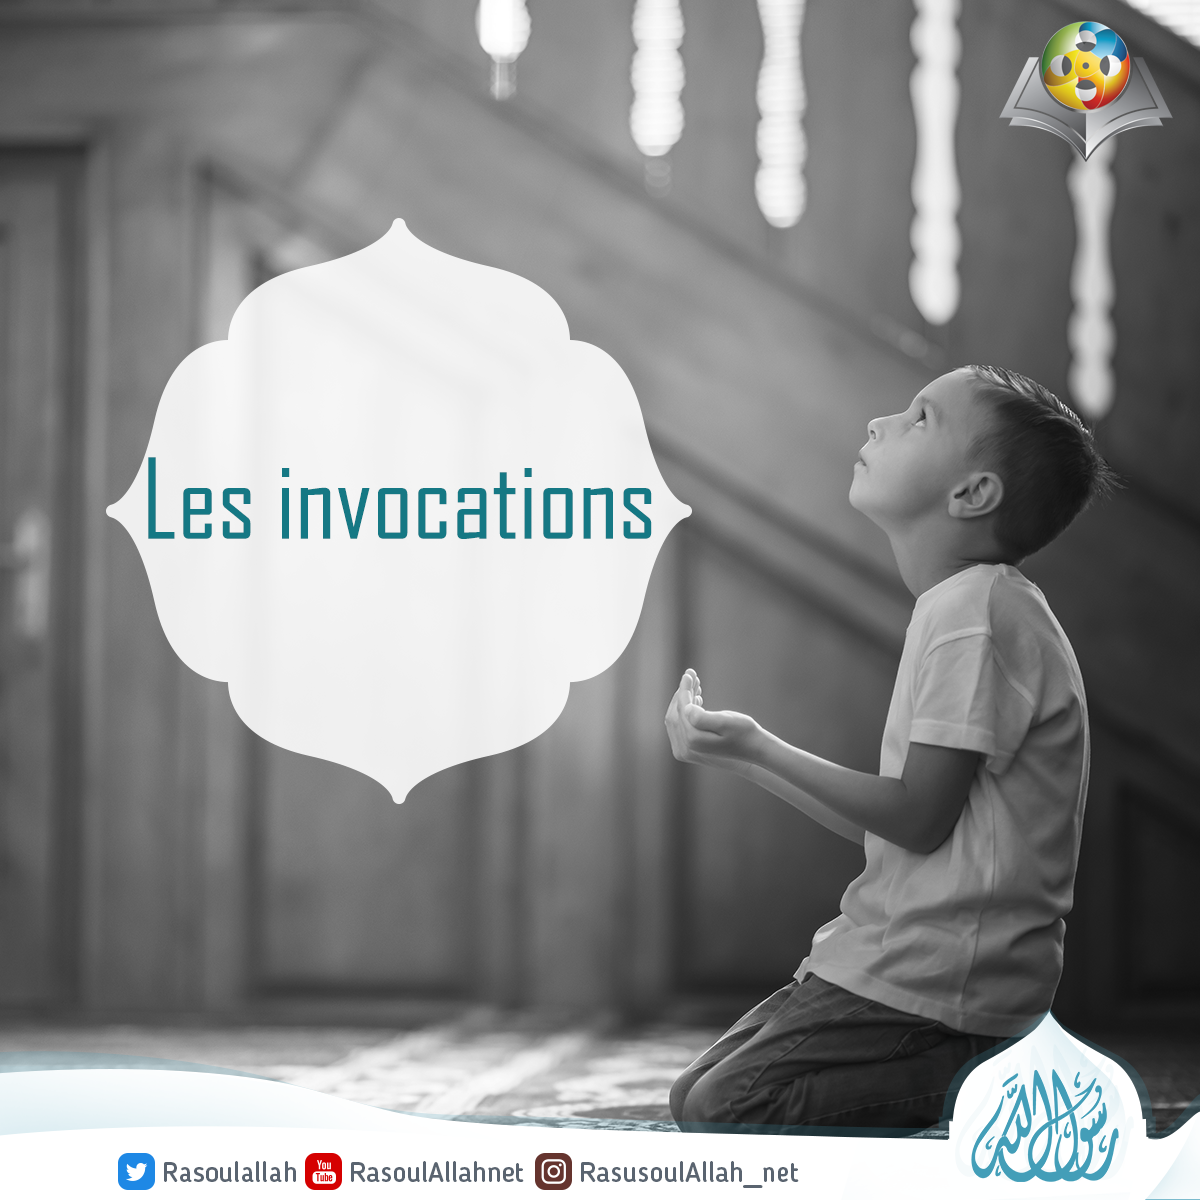 Les invocations